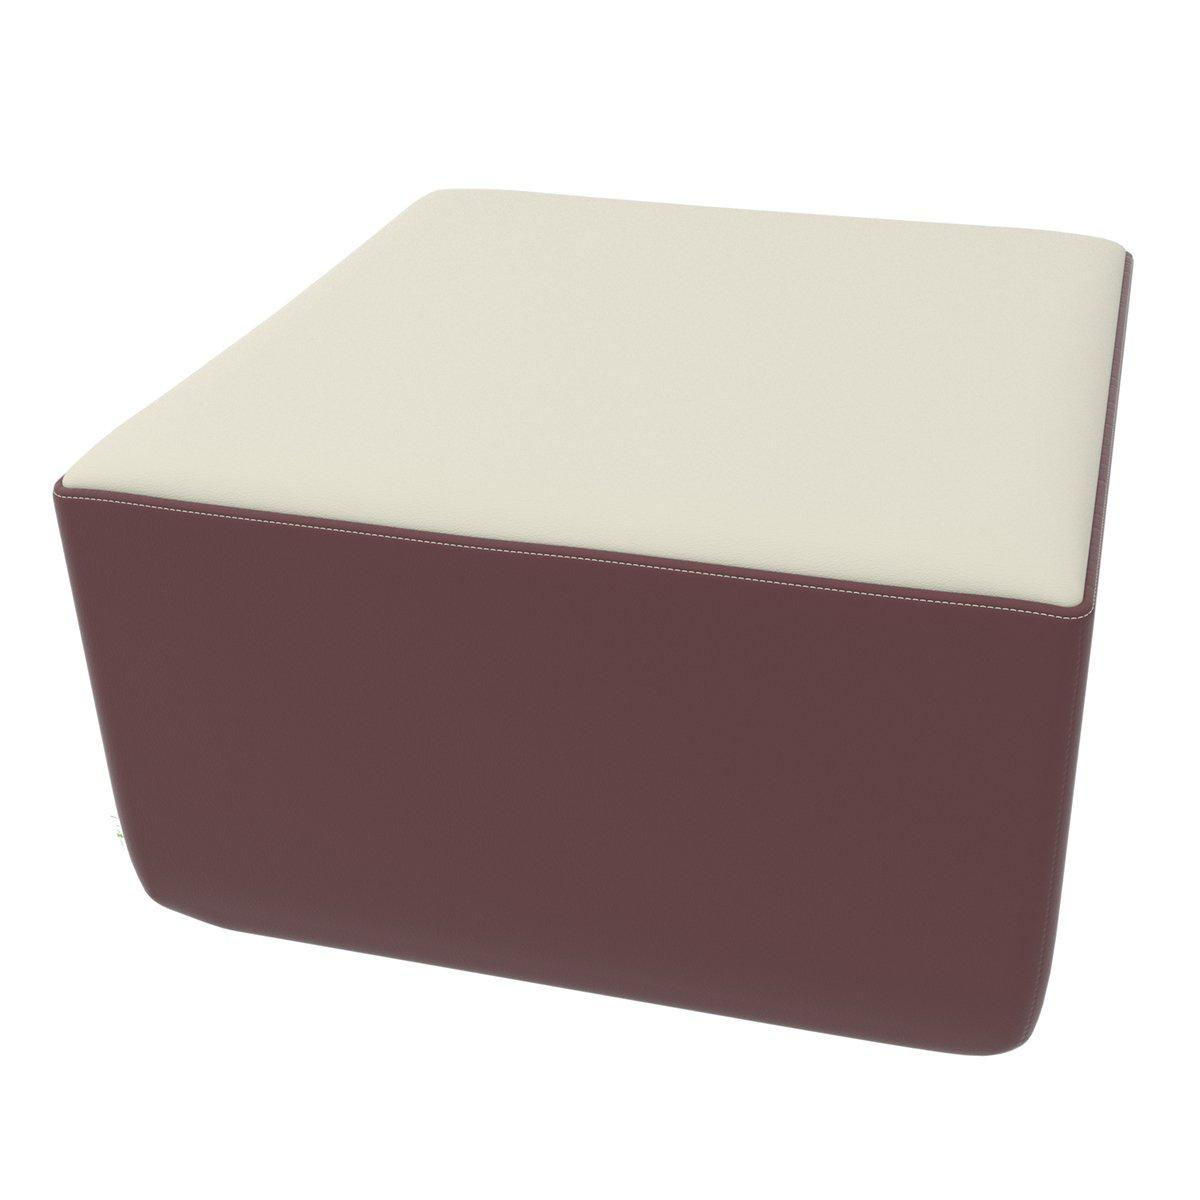 Fomcore Armless Series Linear Corner Ottoman with 100% ALL-FOAM CORE, Antibacterial Vinyl Seat with Patterned Vinyl Sides, LIFETIME WARRANTY